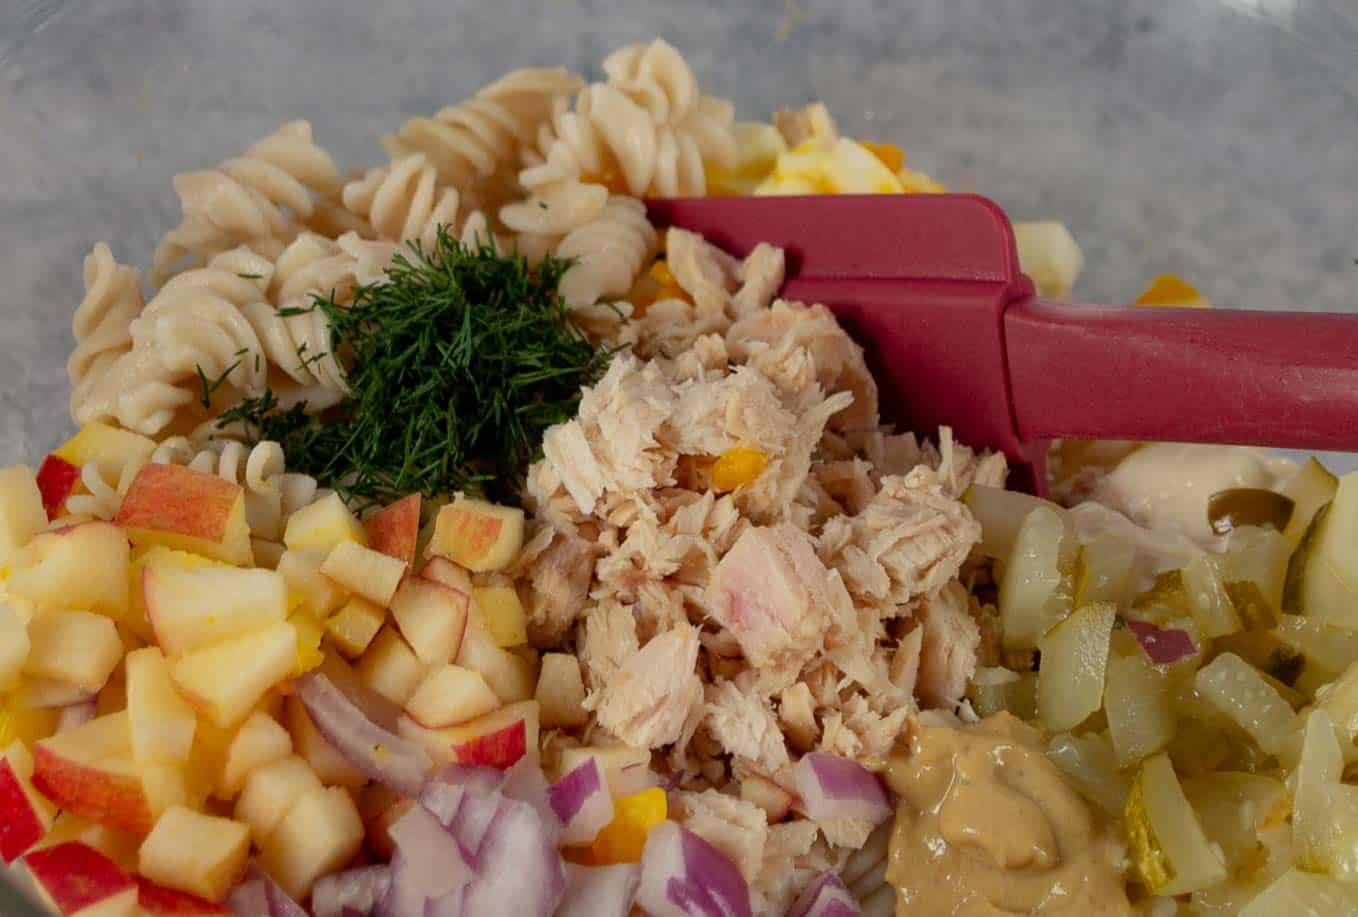 Ingredients for the best, protein-packed tuna pasta salad.